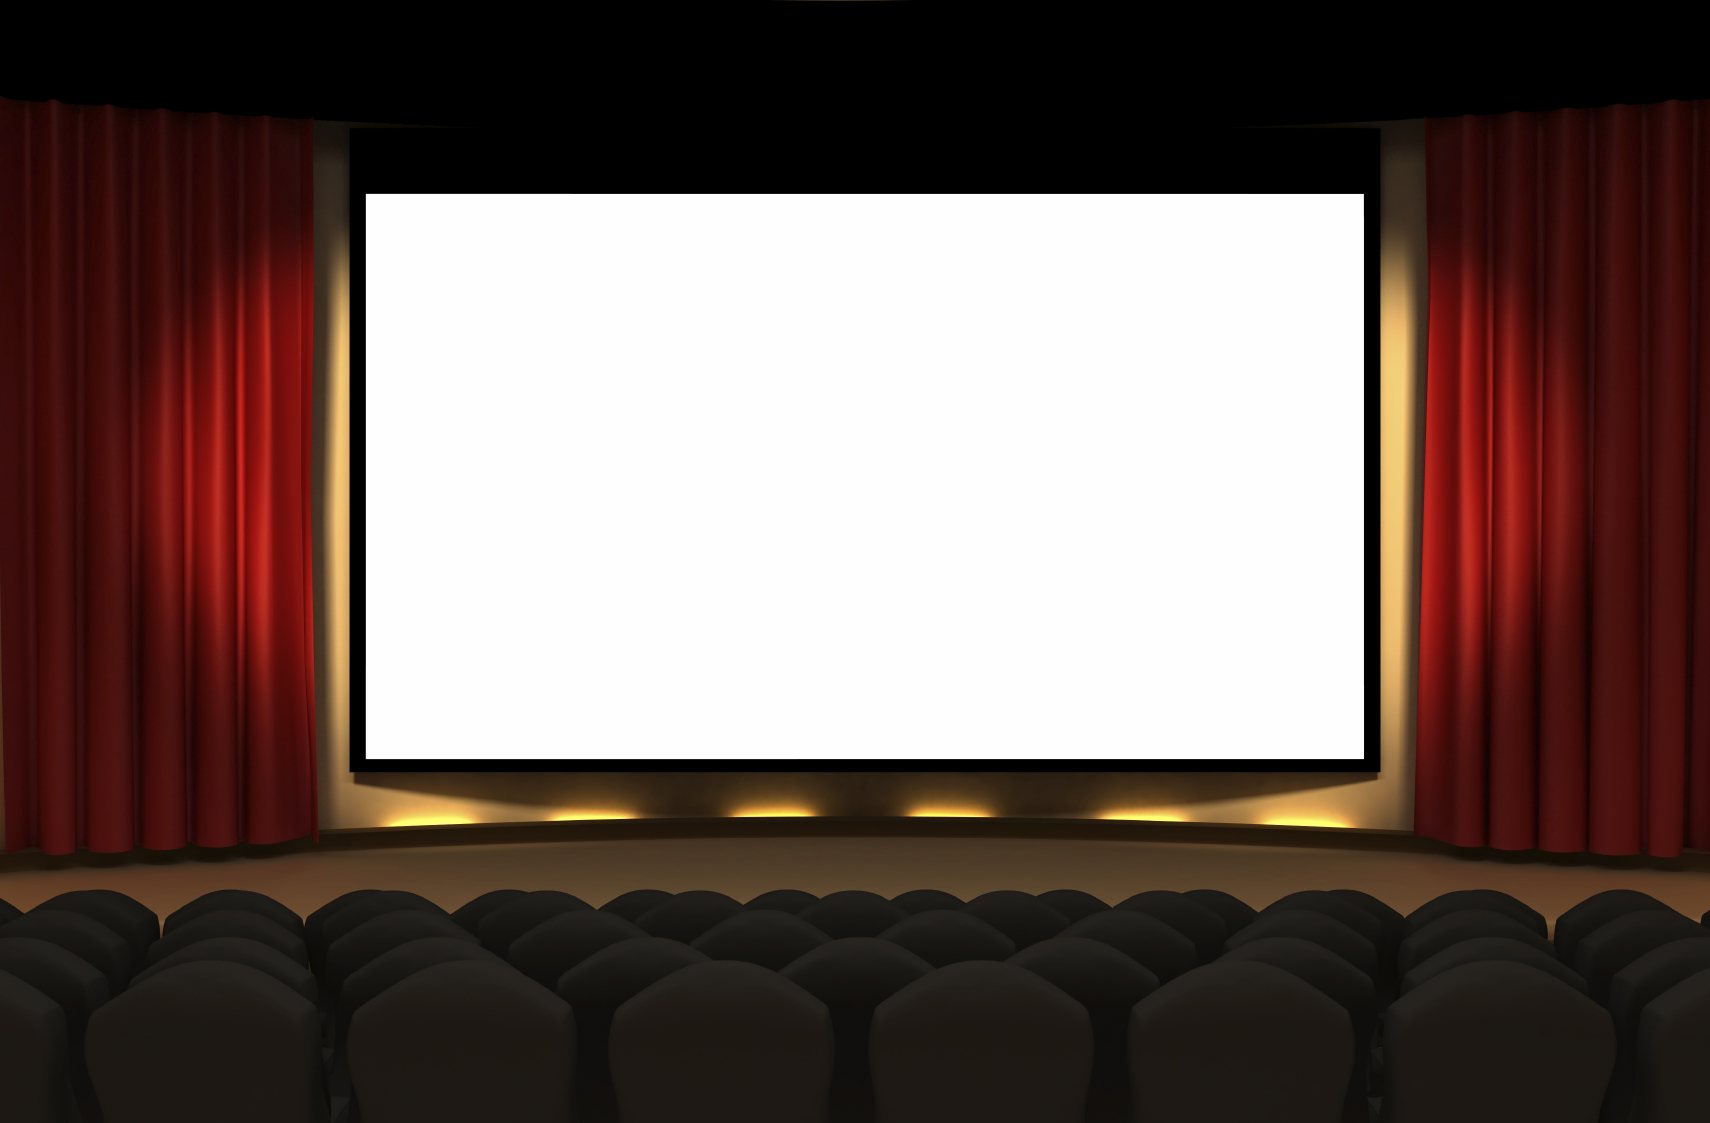 Movie Screen Clipart - Clipart Kid